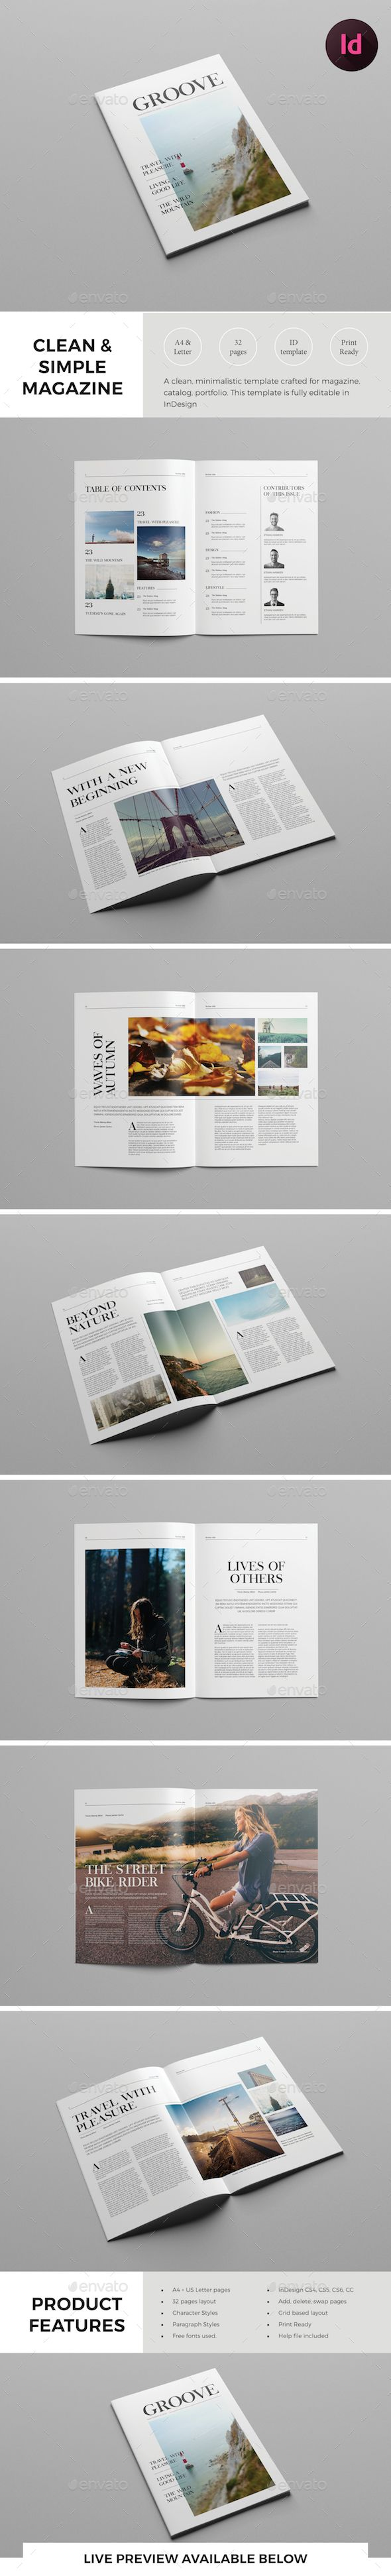 Clean & Simple Magazine Template InDesign INDD. Download here: http://graphicriver.net/item/clean-simple-magazine-template/14925430?ref=ksioks